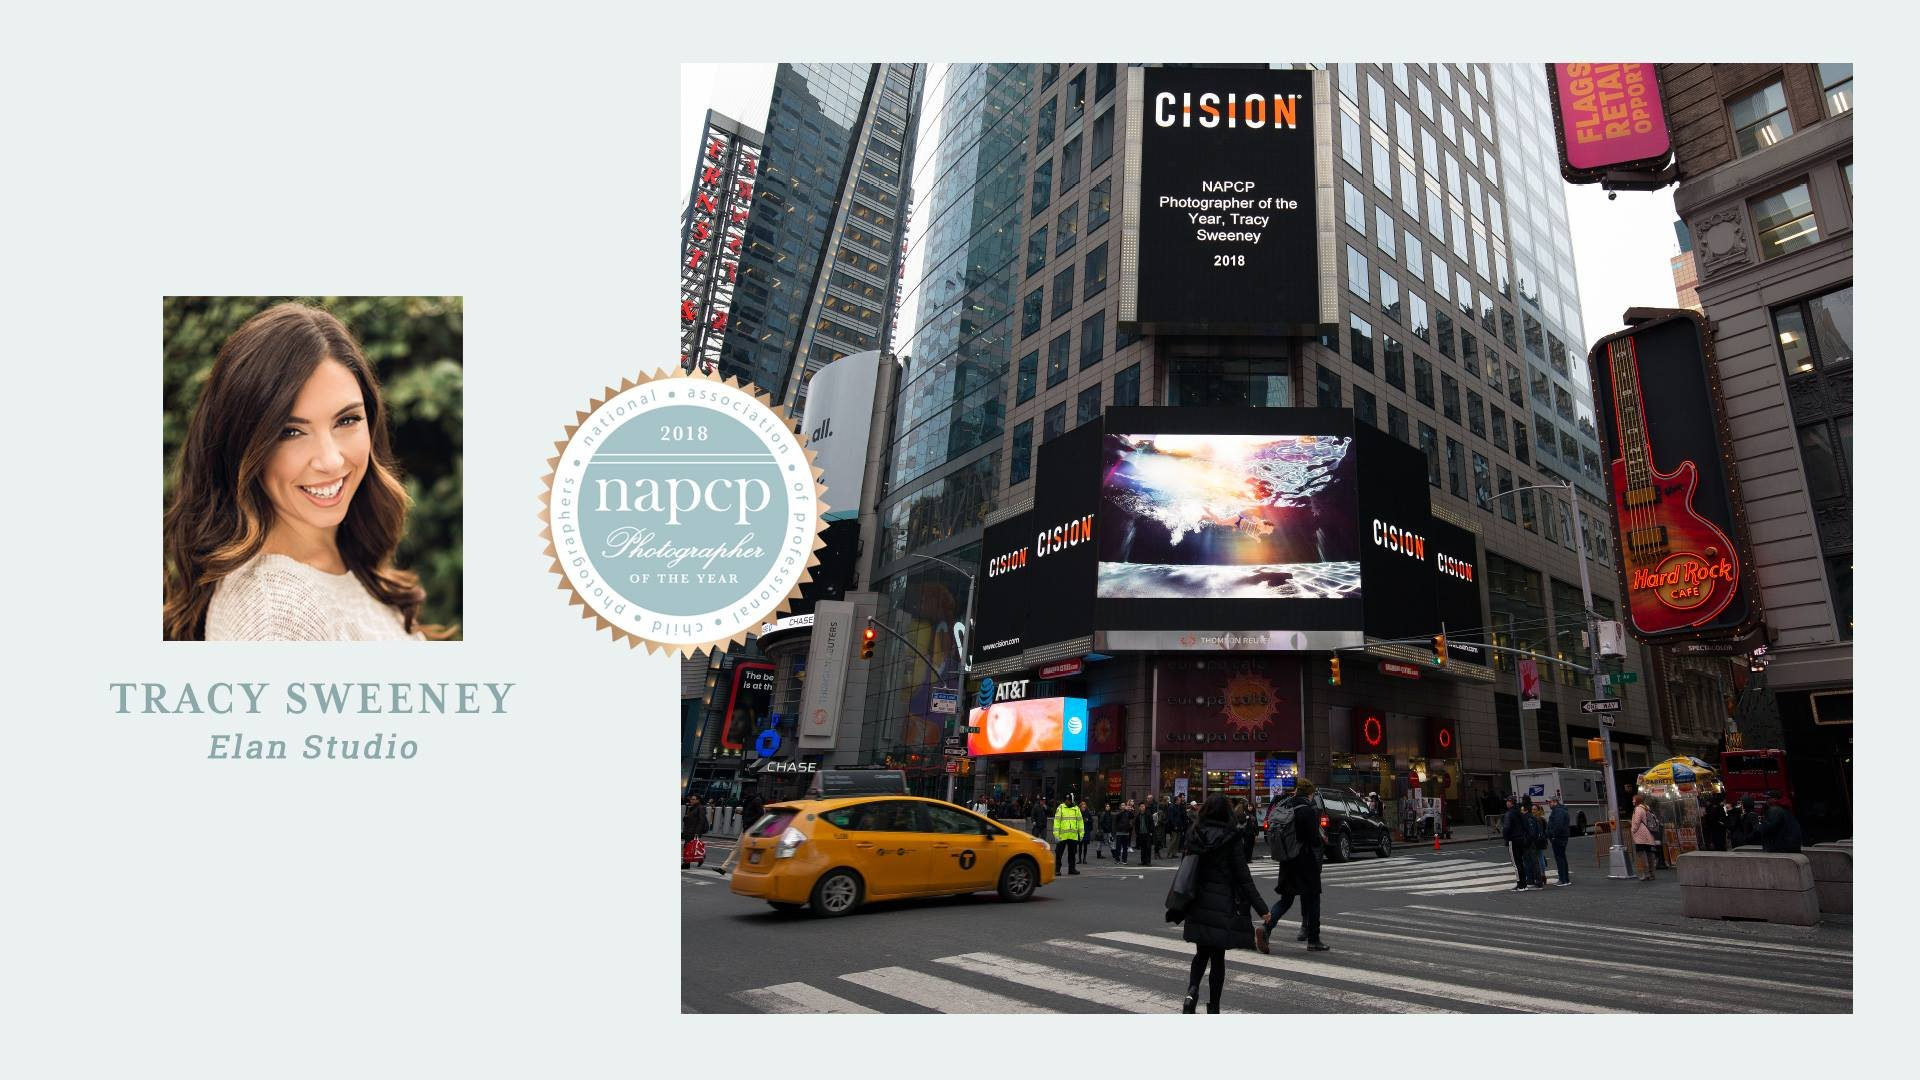 Elan Studio by Tracy Sweeney home banner, Tracy's winning image in Times Square